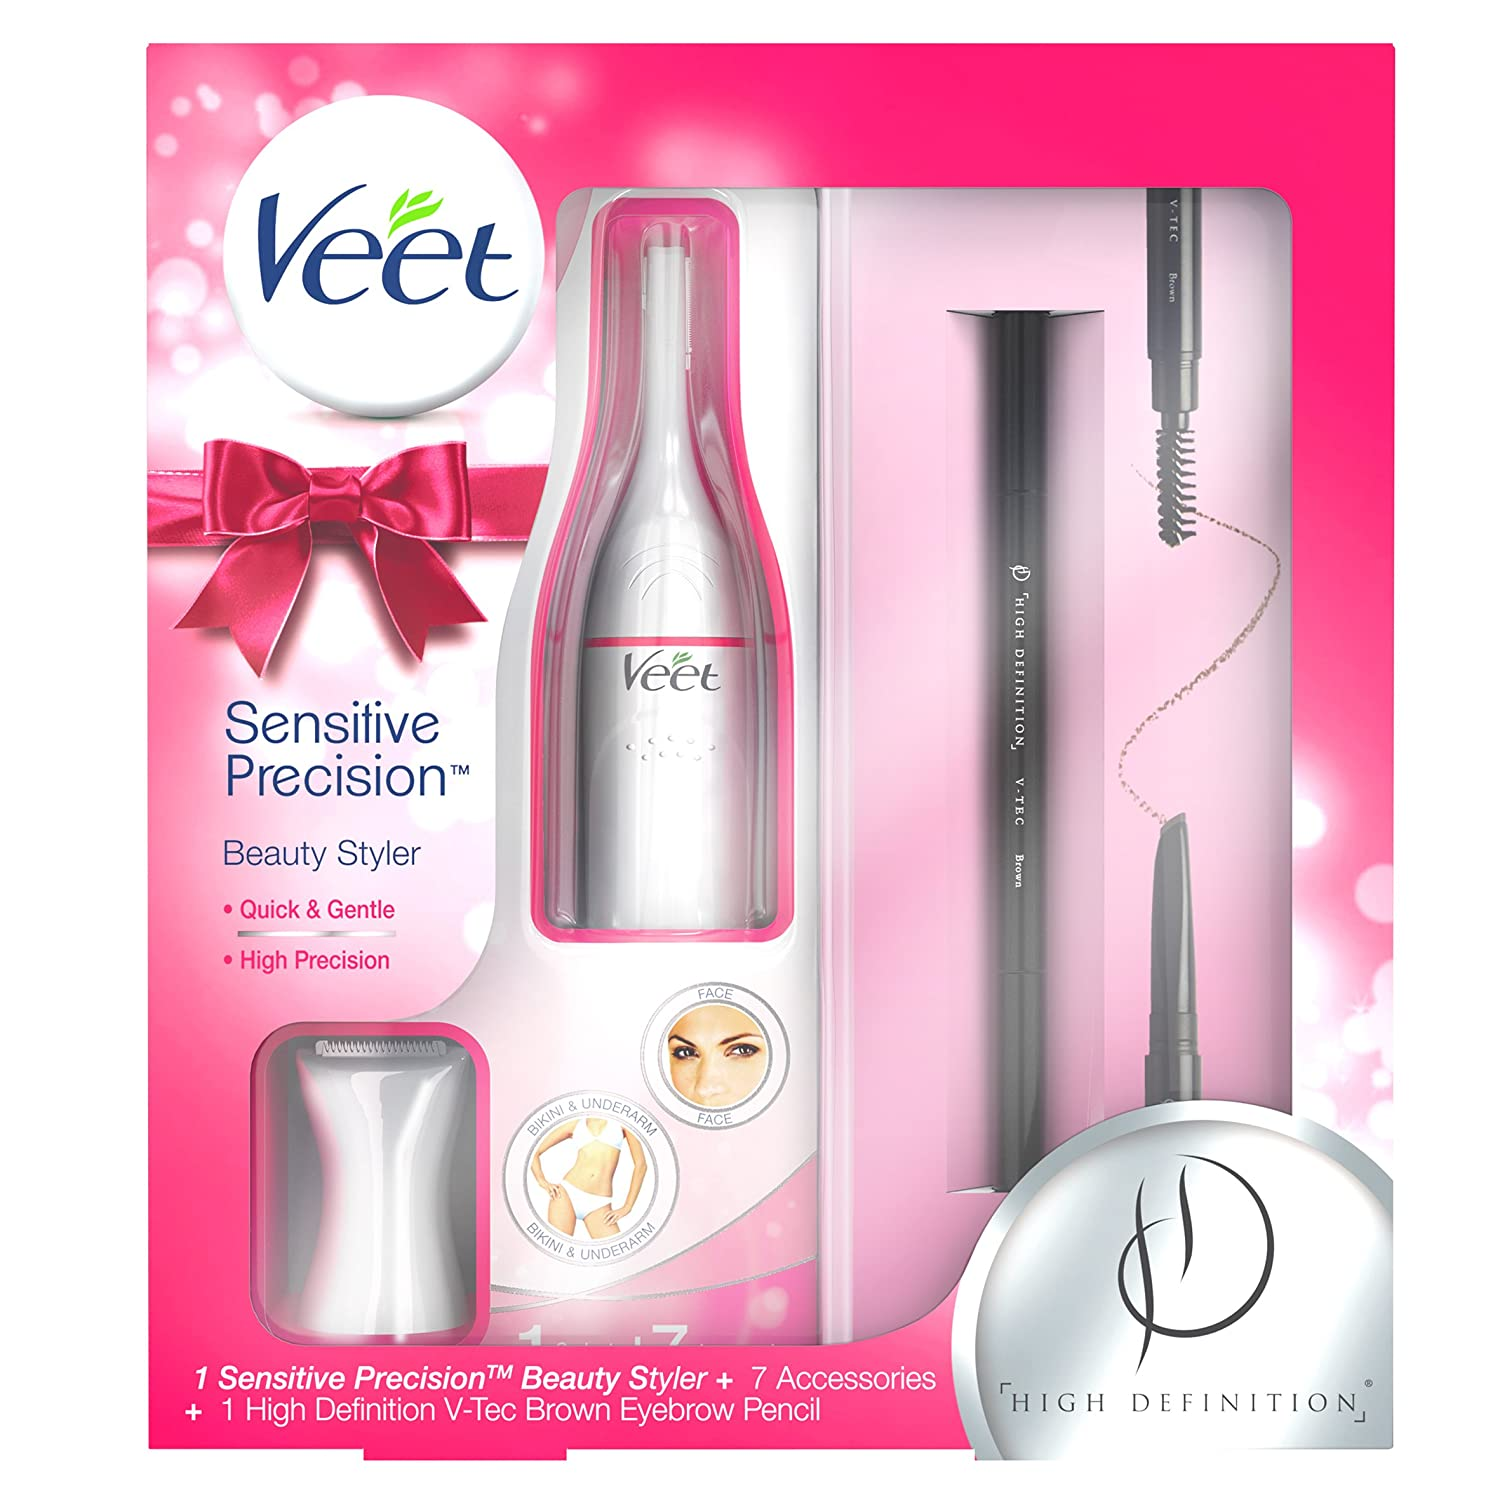 Here is the Completely New Image Of Veet New Product In Amazon